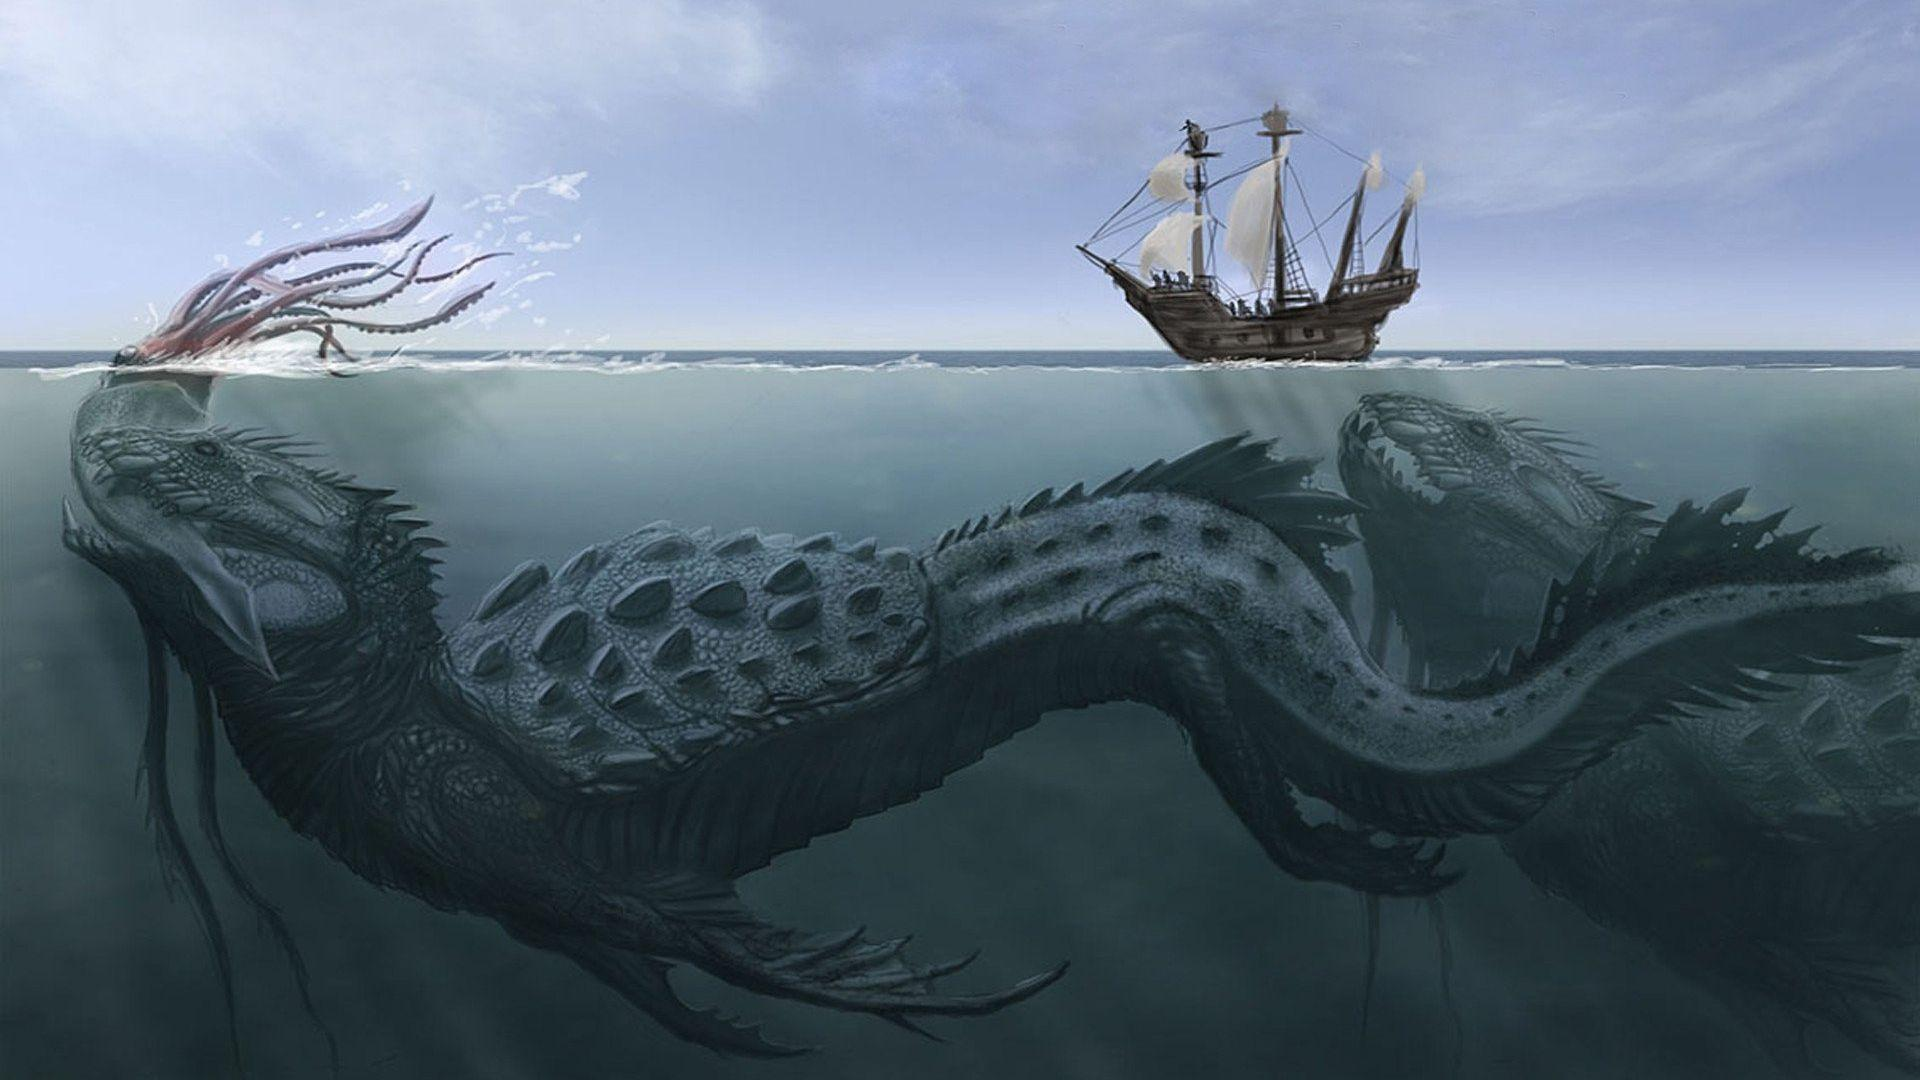 Sea Monster HD Wallpapers | Live HD Wallpaper HQ Pictures, Images ...